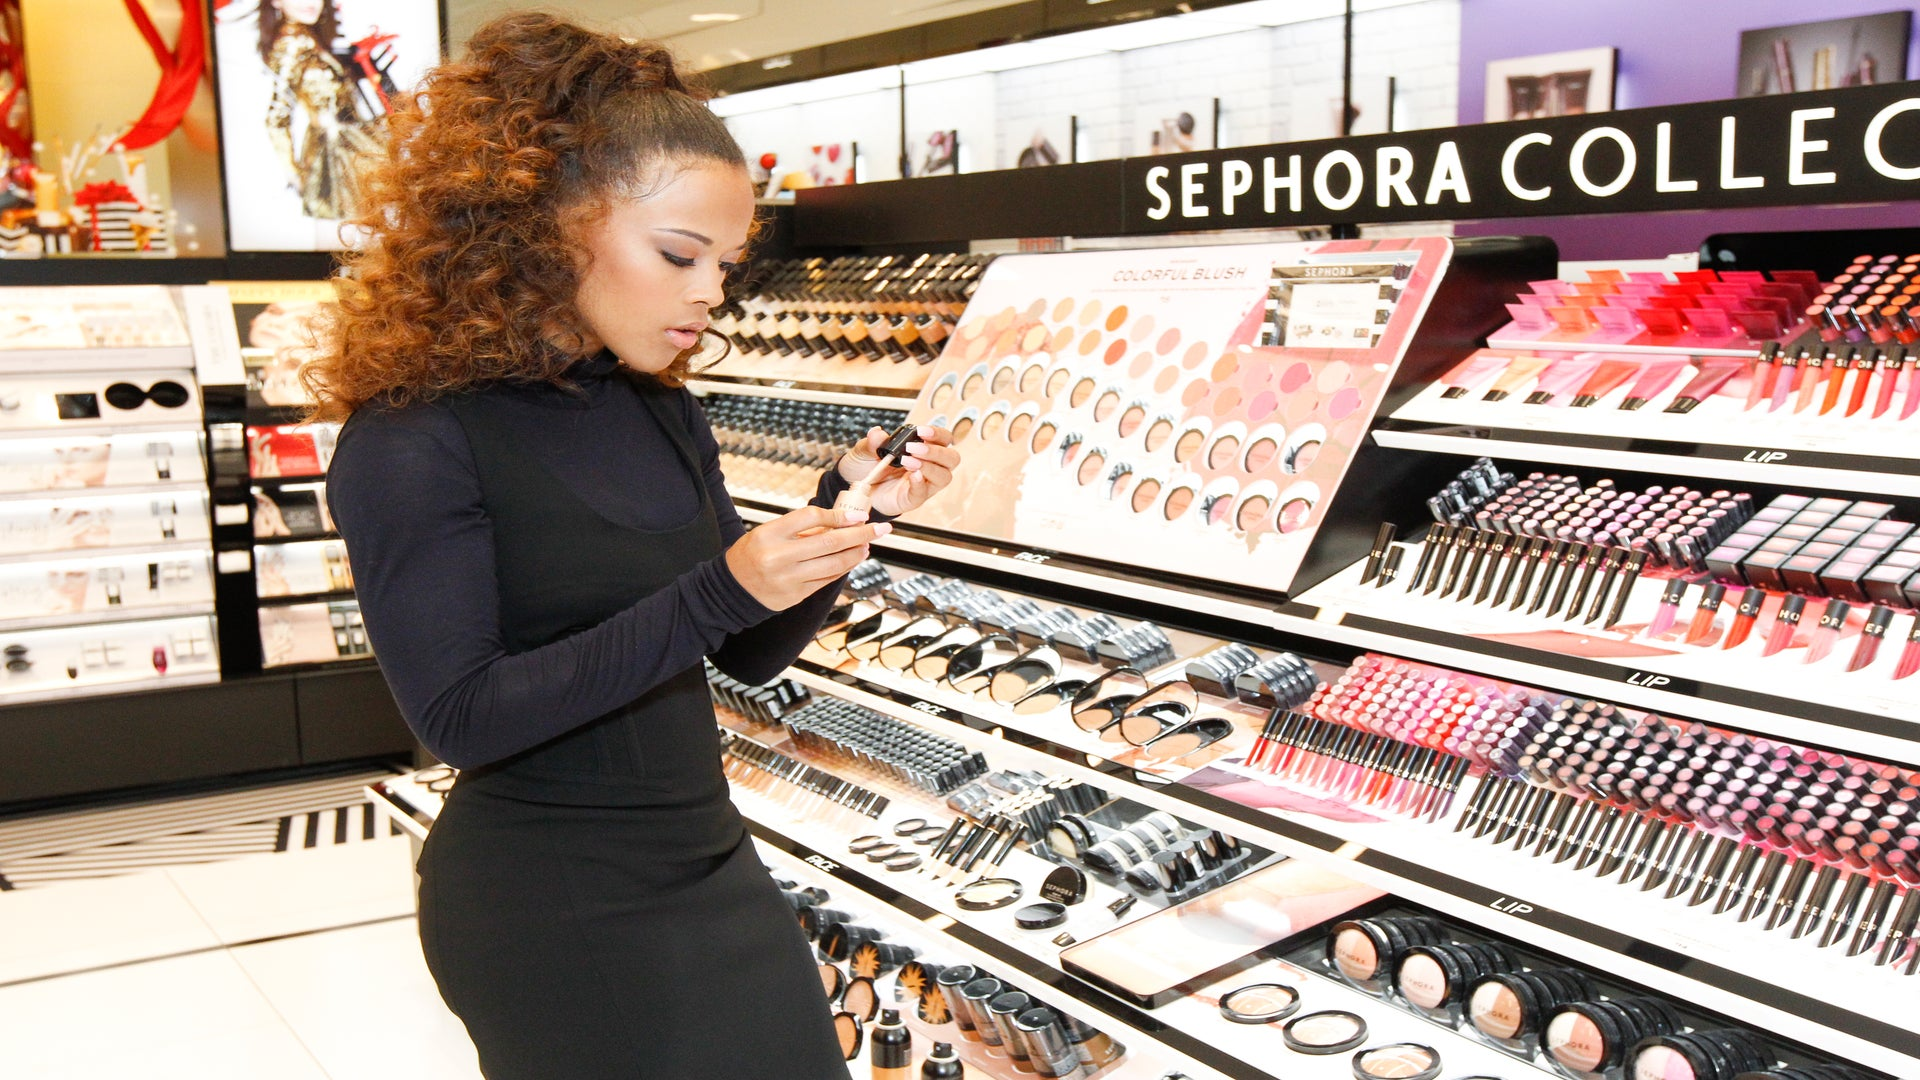 You'd Be Crazy To Pass Up Sephora's $10 Black Friday Gift Sets